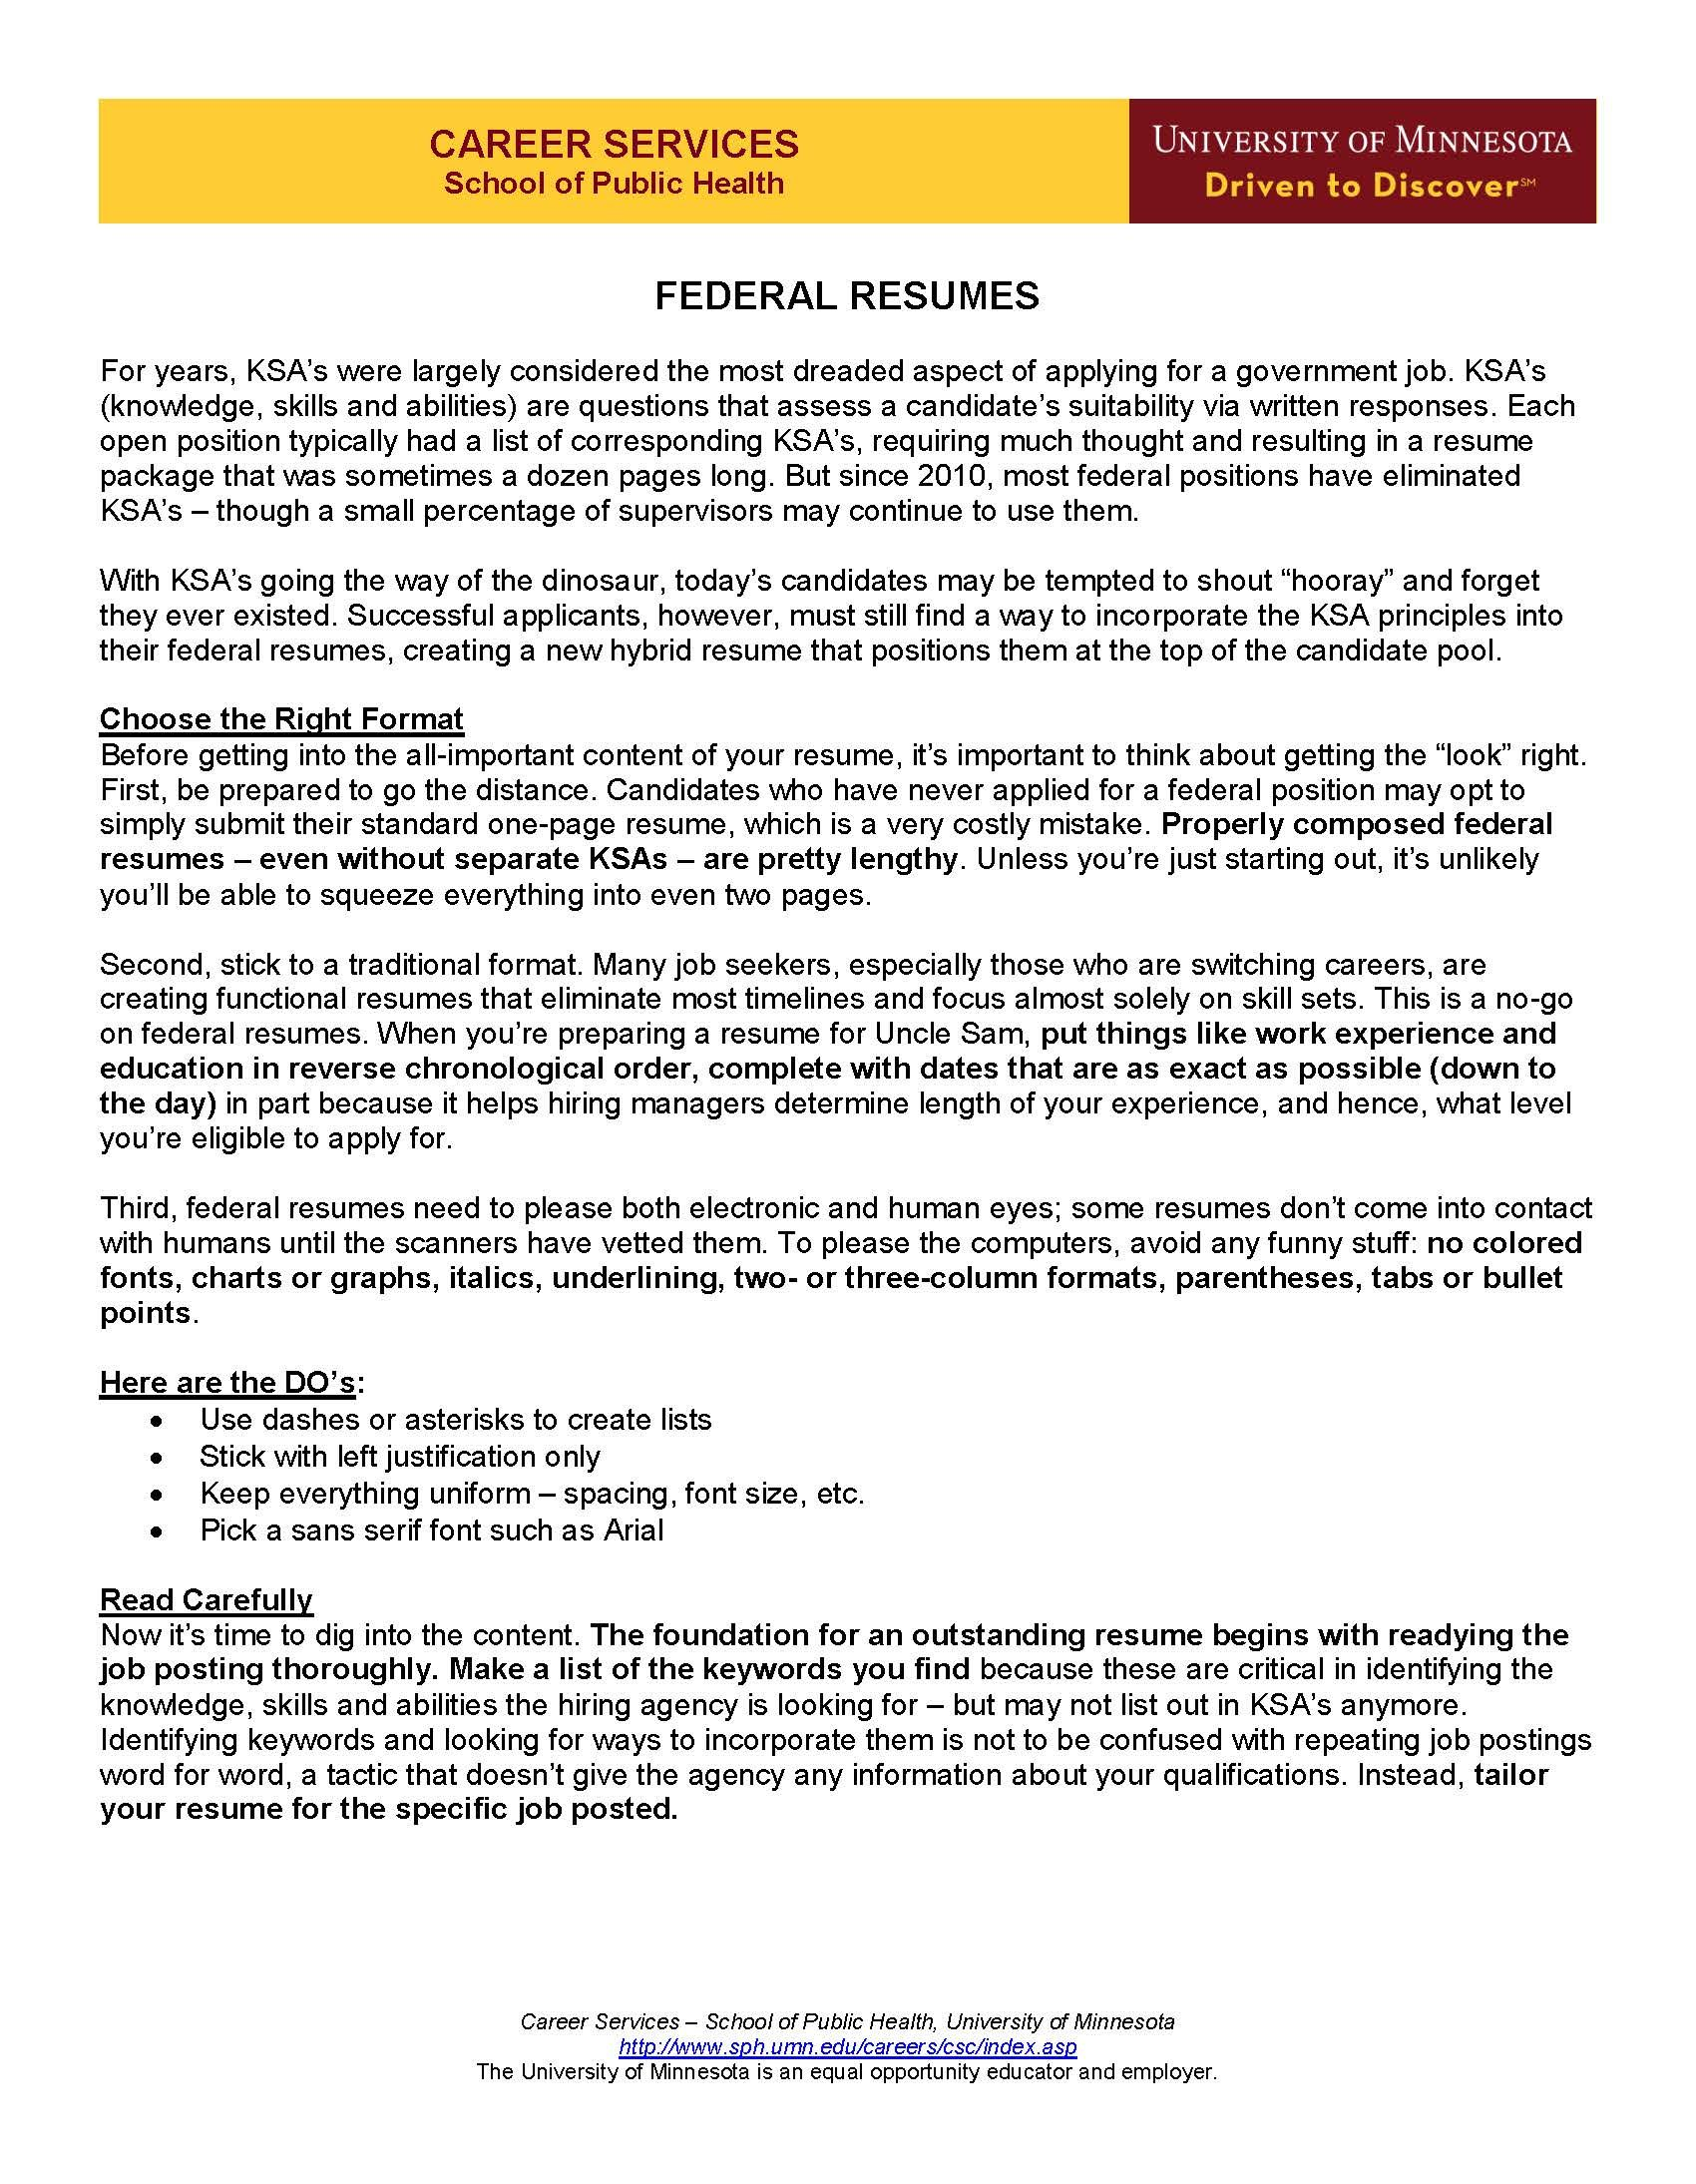 Master Resume Writer Federal Resumes Page 1 Resume Guide Federal Resume Career